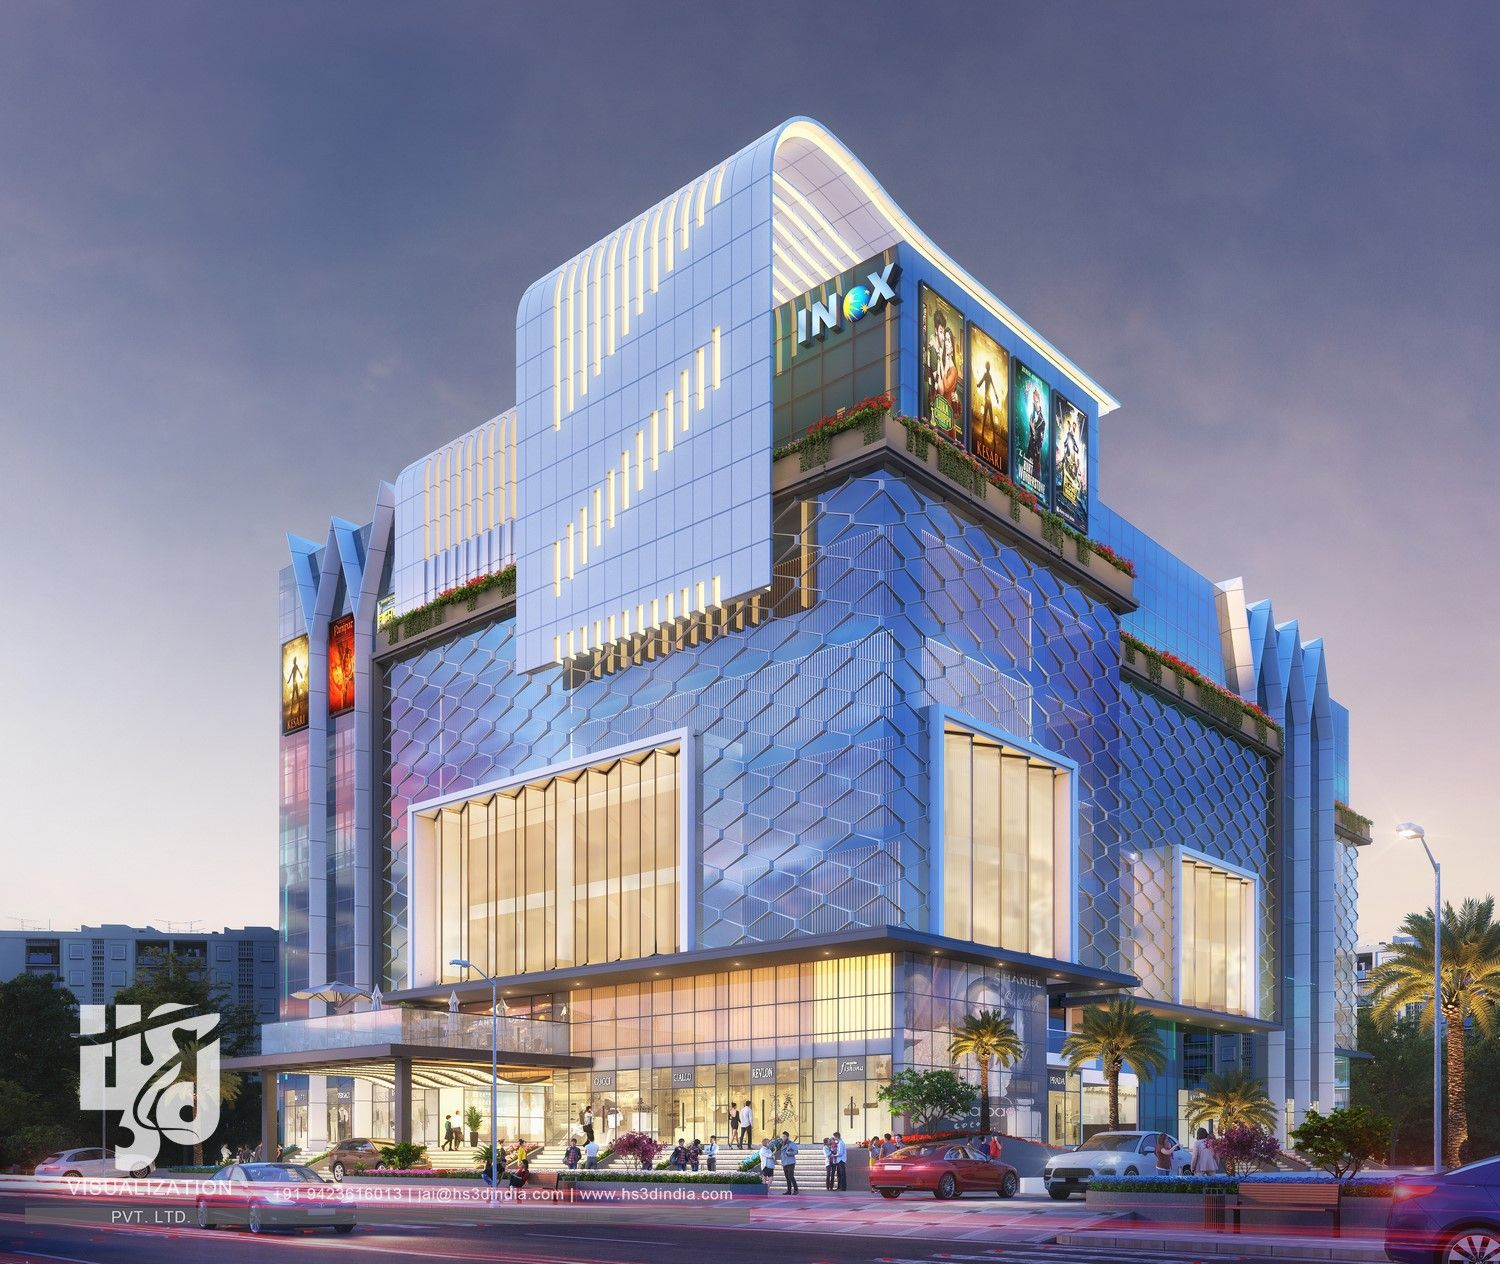 Street View Architectural Building Exterior Commercial Design Exterior Shopping Mall Architecture